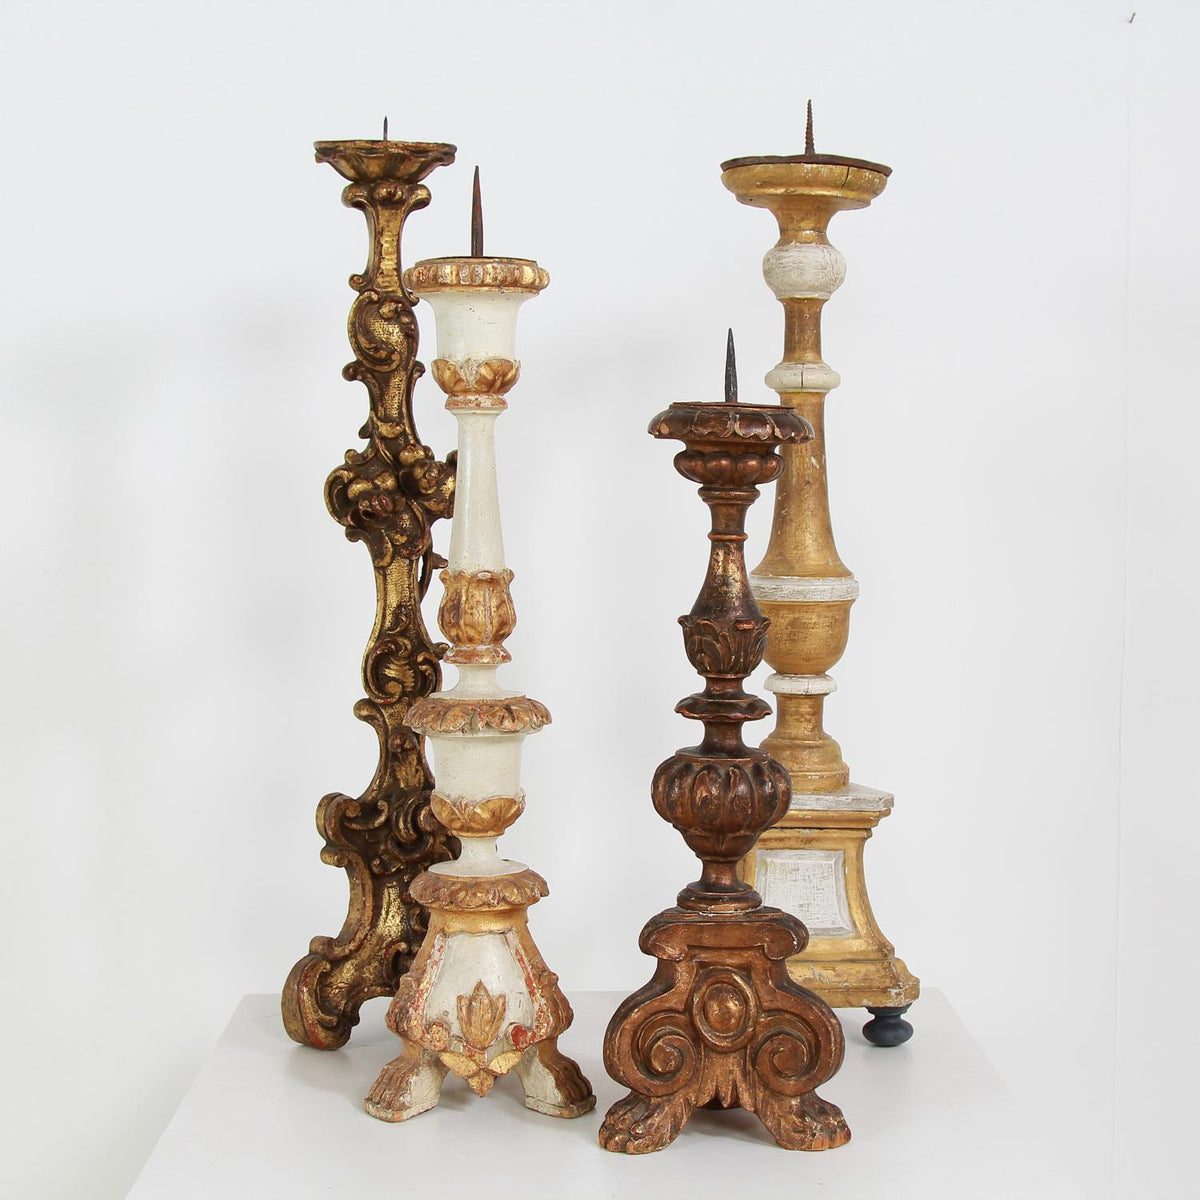 A finely Carved Italian Early  19thC Pricket Candlestick